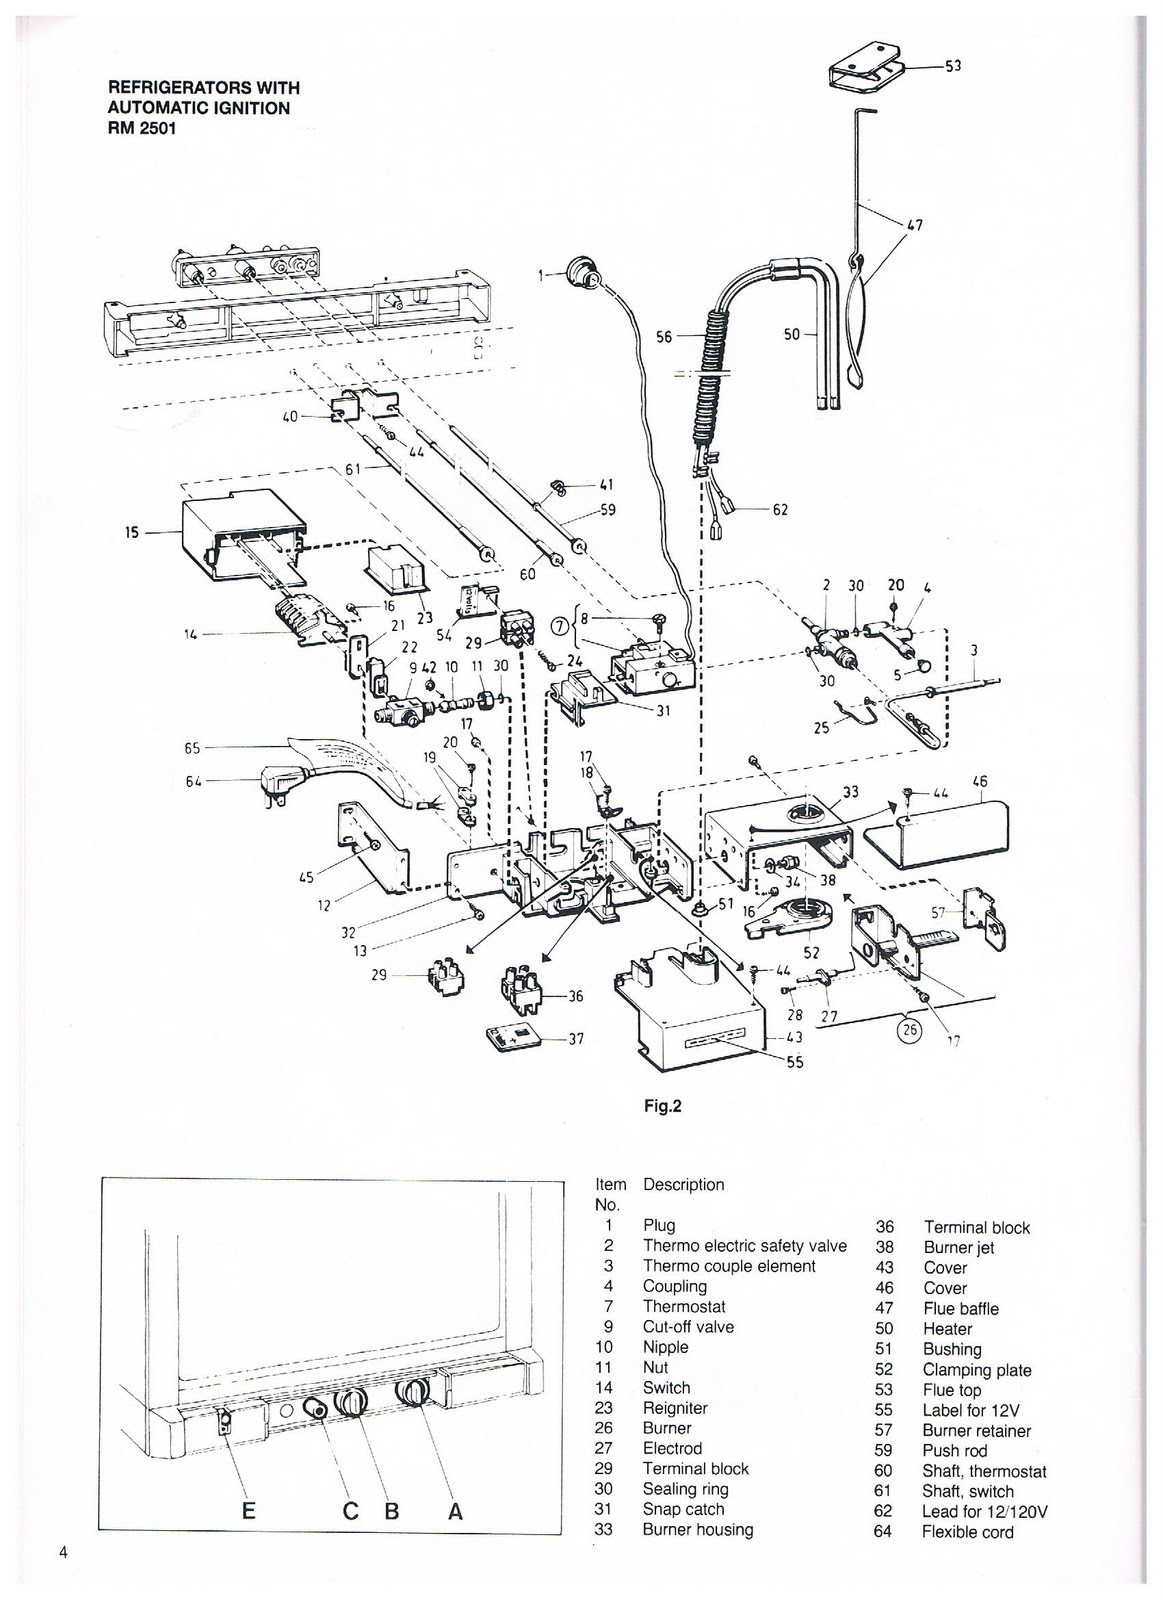 Gm 7 Way Wiring Diagram. Diagram. Auto Wiring Diagram